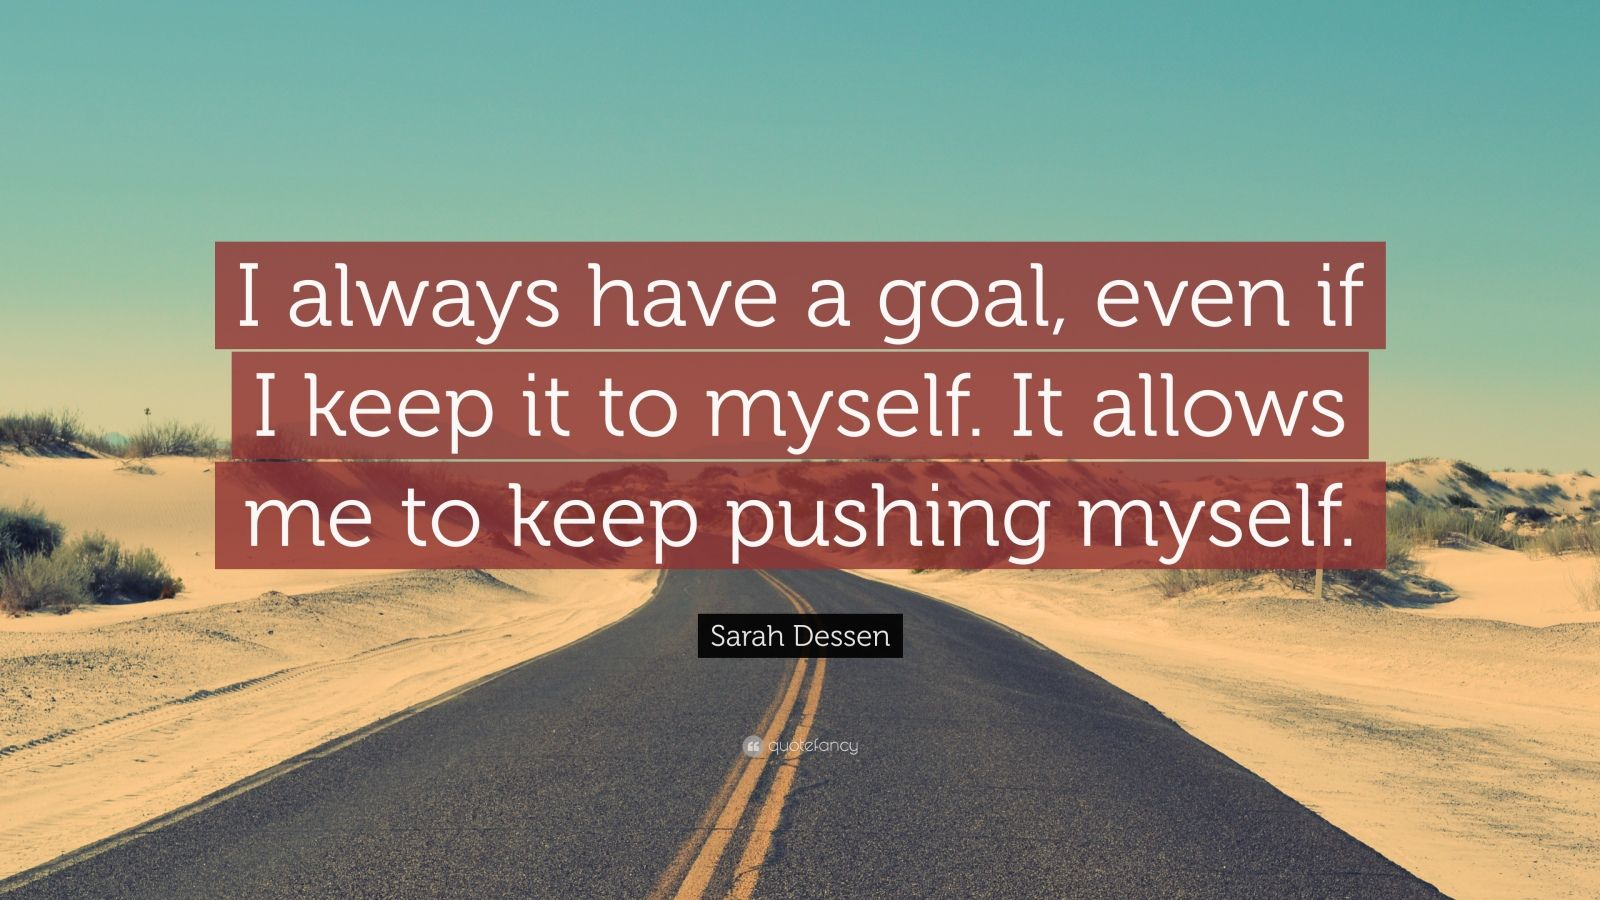 """Sarah Dessen Quote: """"I always have a goal, even if I keep it to myself. It allows me to keep pushing myself."""""""